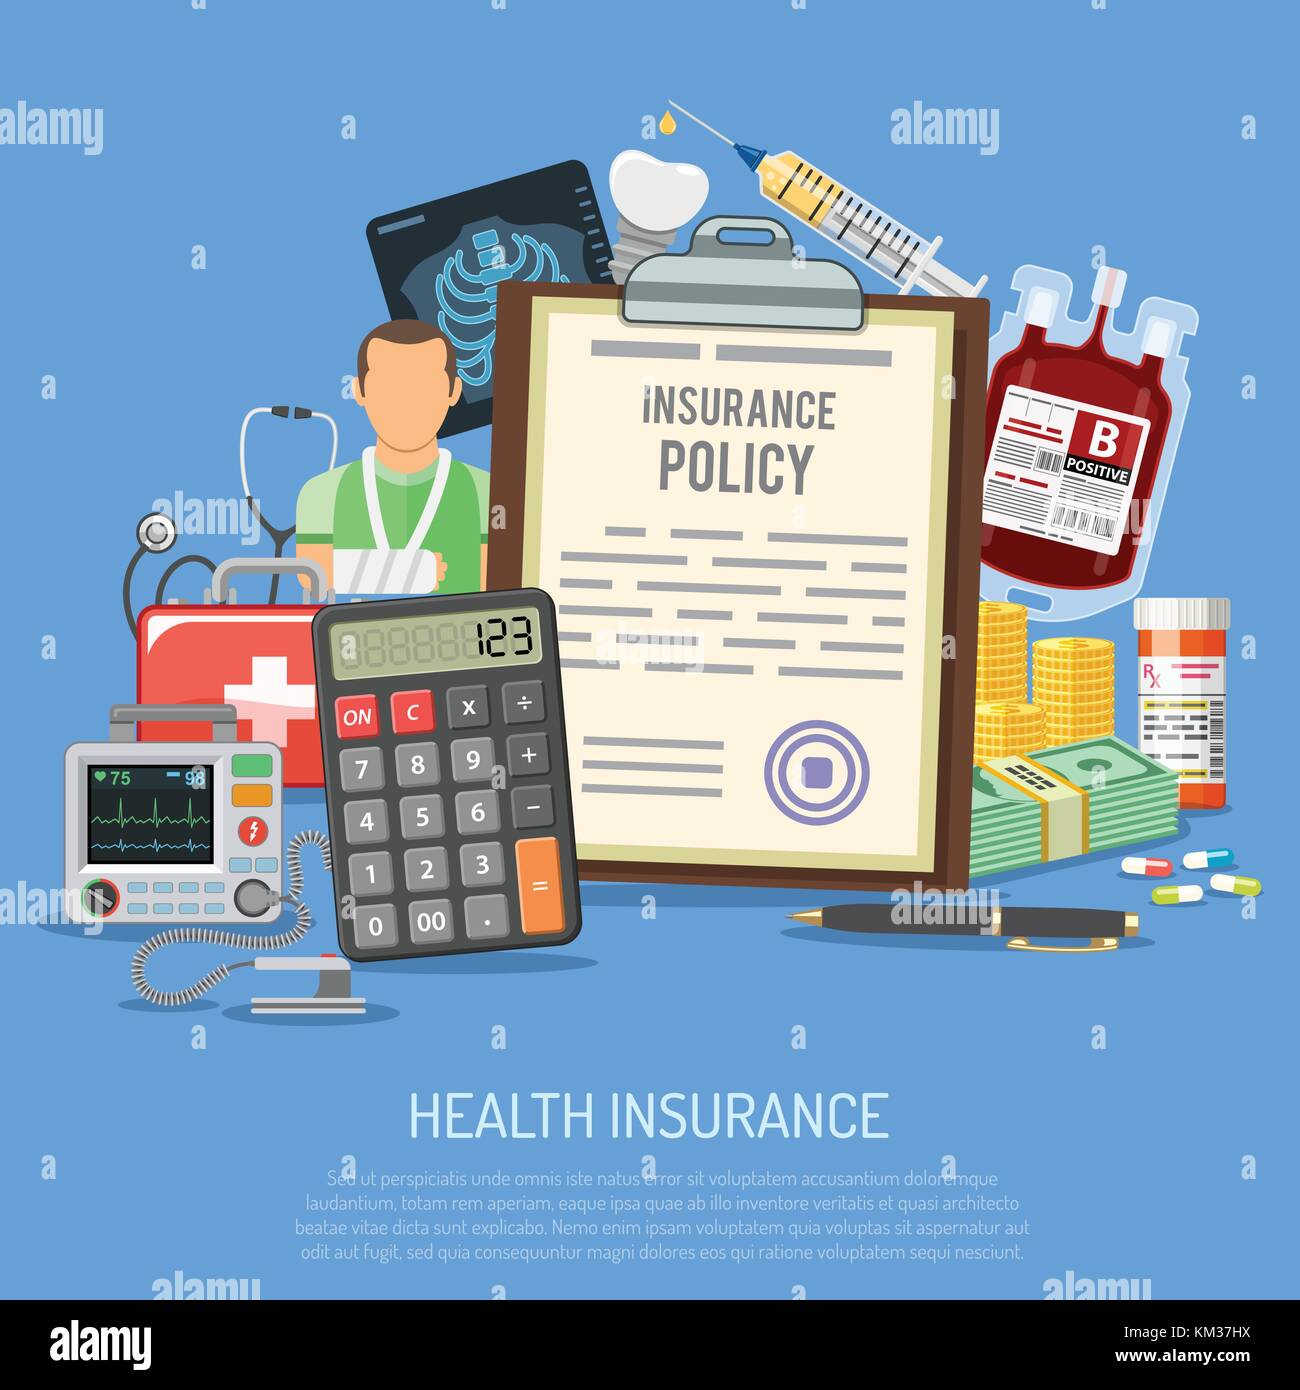 Health Insurance Services Concept - Stock Image